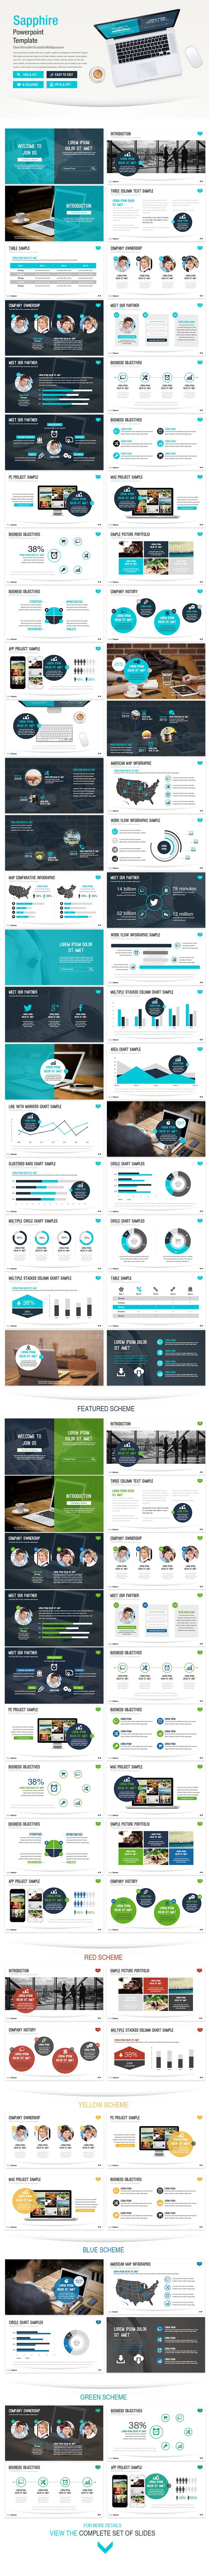 Sapphire powerpoint template (Powerpoint Templates)